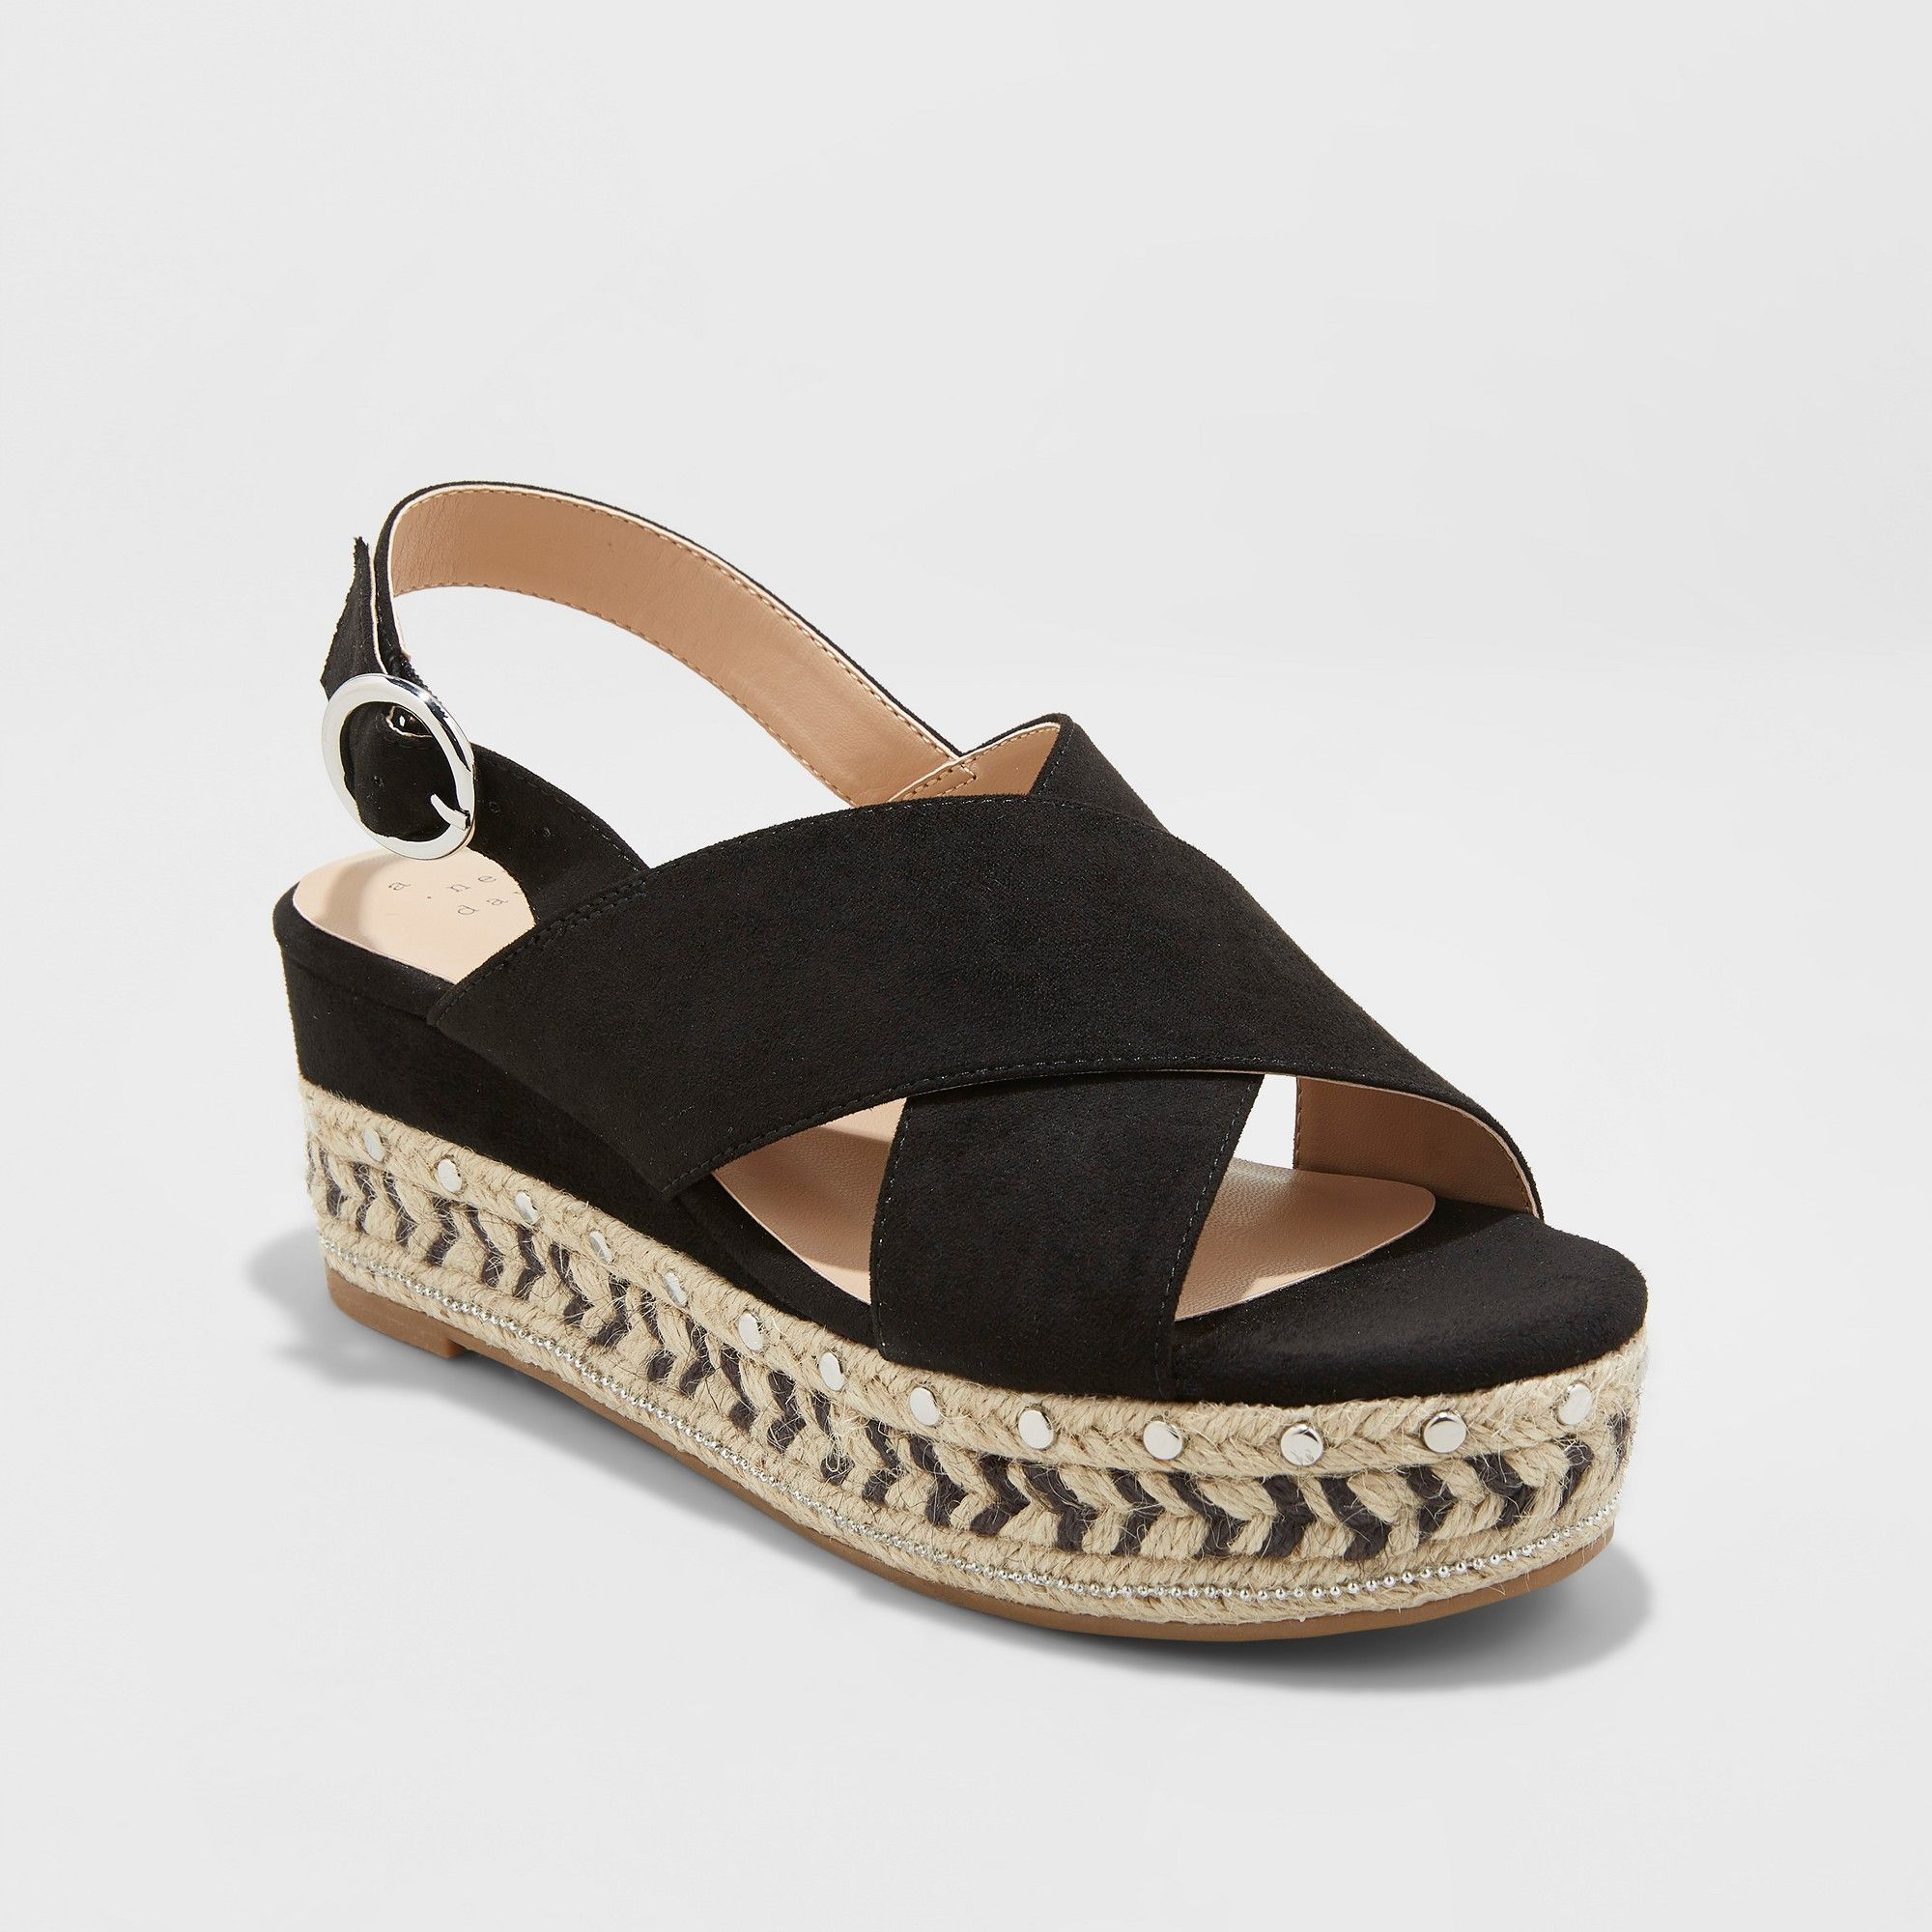 4f20d3a871 Women's Trista Mixed Media Wedge Espadrille - A New Day Black 9 in ...